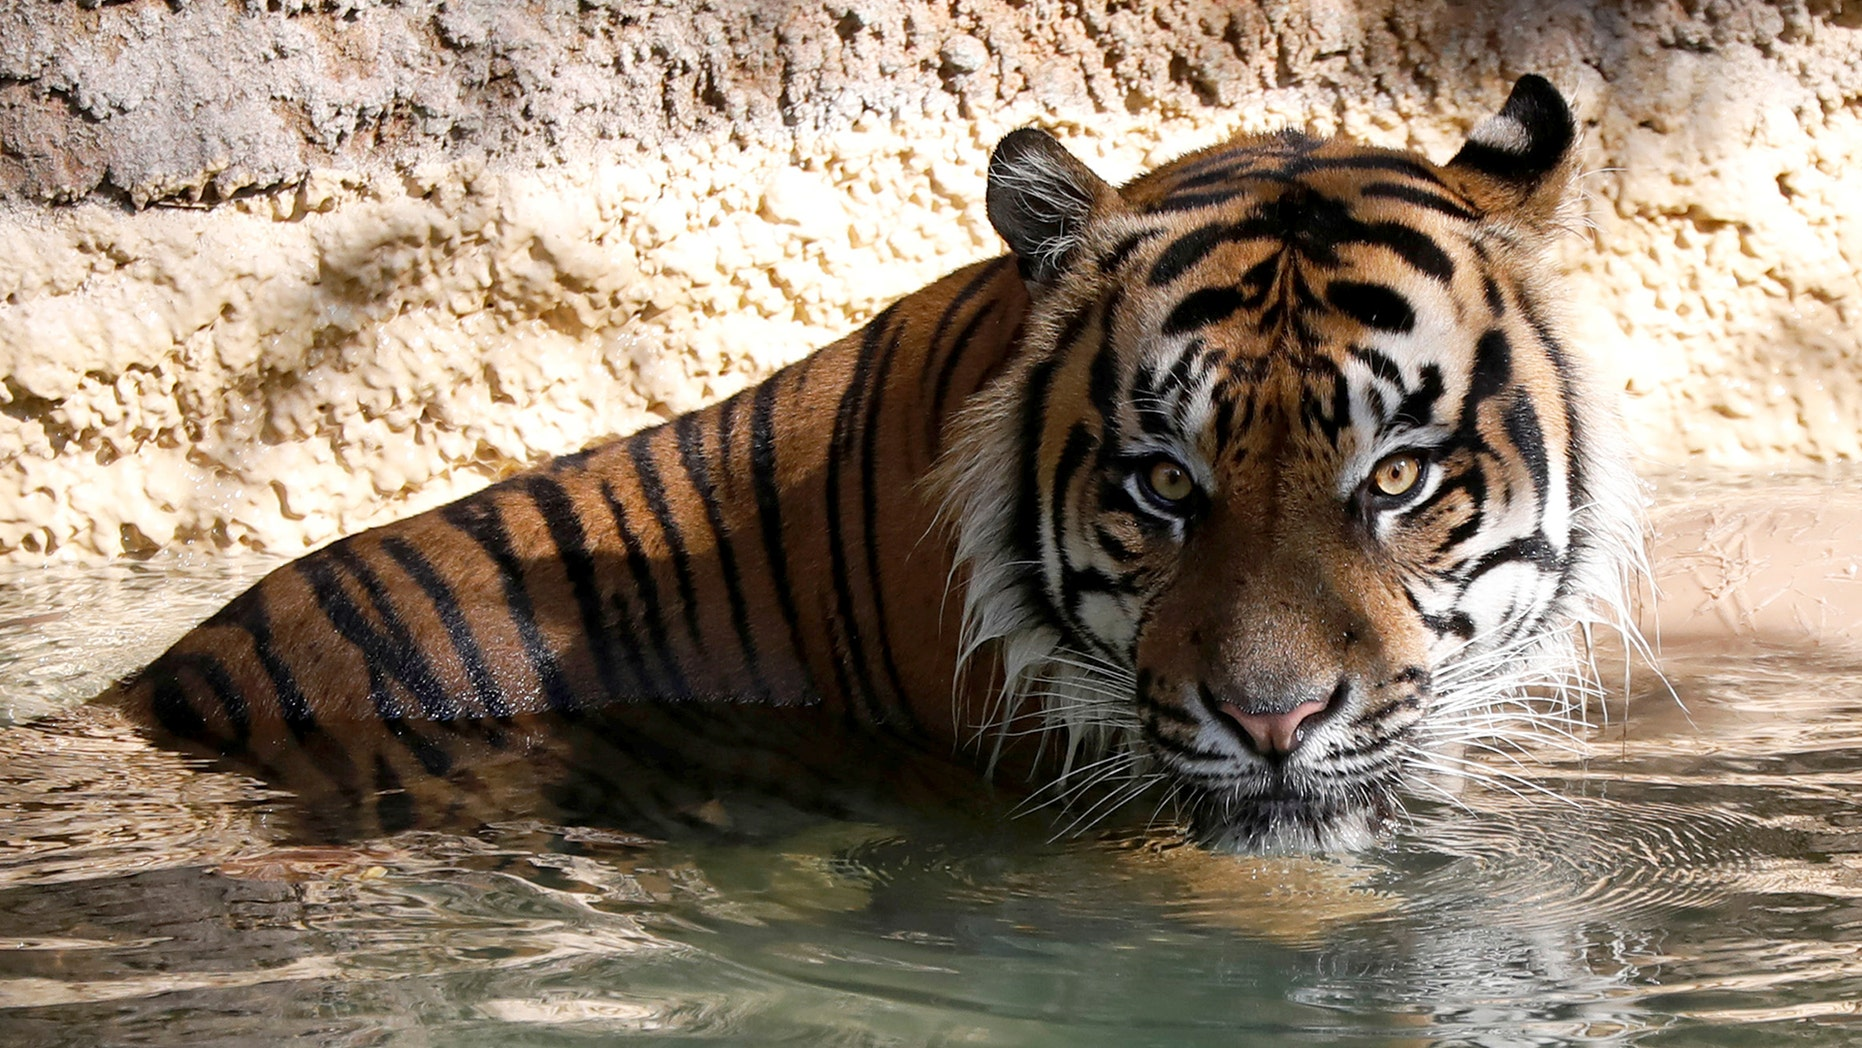 A Sumatran tiger cools off in her enclosing during a summer day during a Los Angeles Zoo, Aug. 5, 2017. (Reuters)